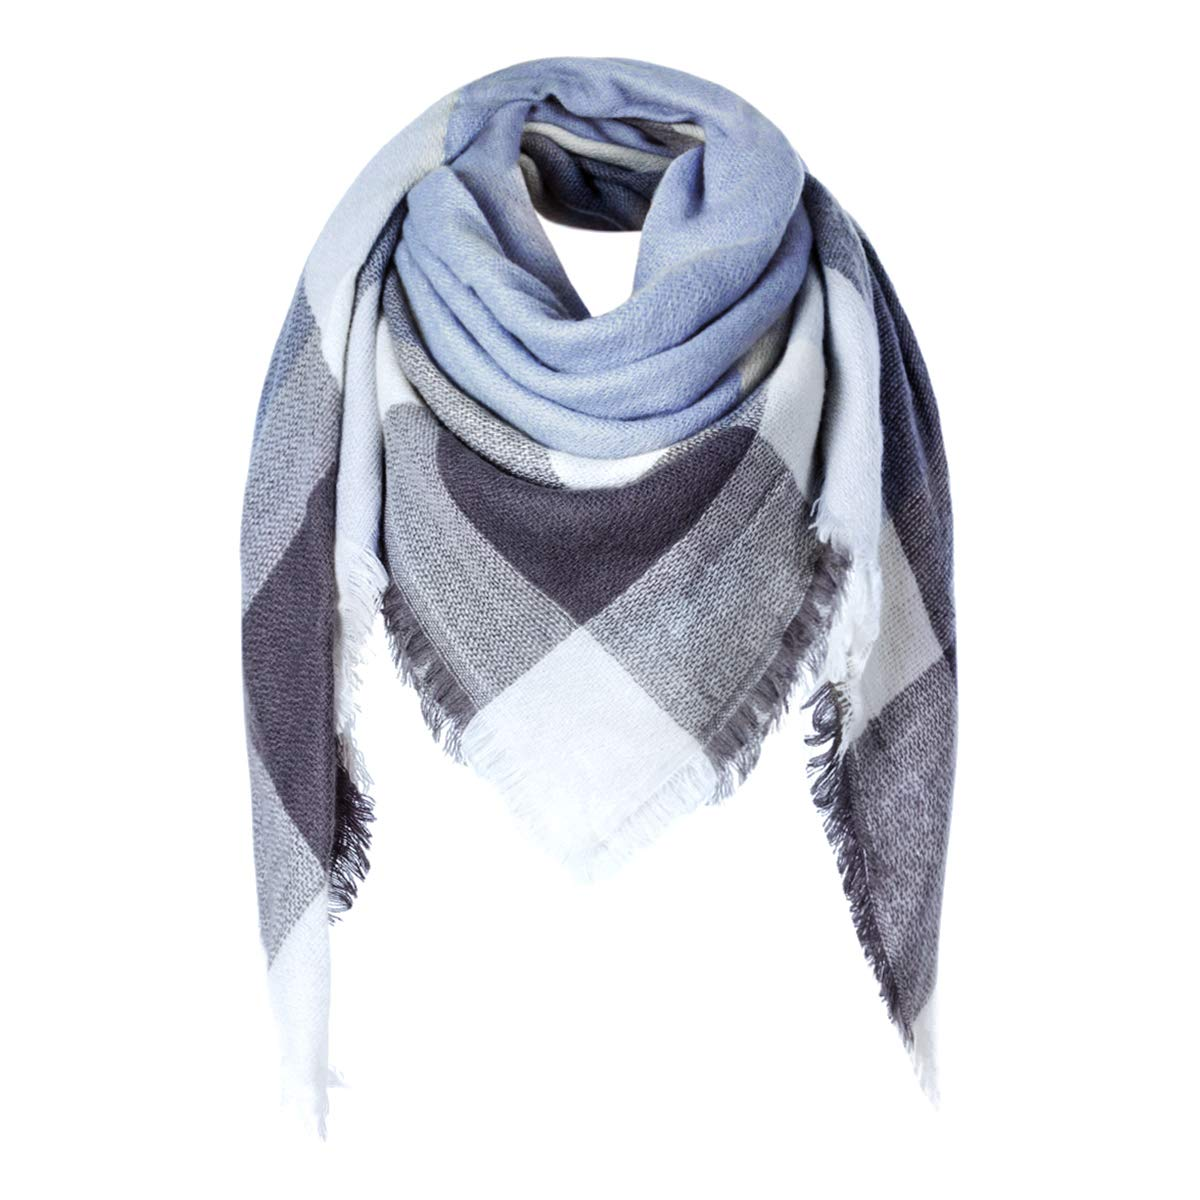 Charm Women Long Scarves Classic Lattice Pattern Scarf comfortable Warm Shawl Ladies Outdoor Accessories